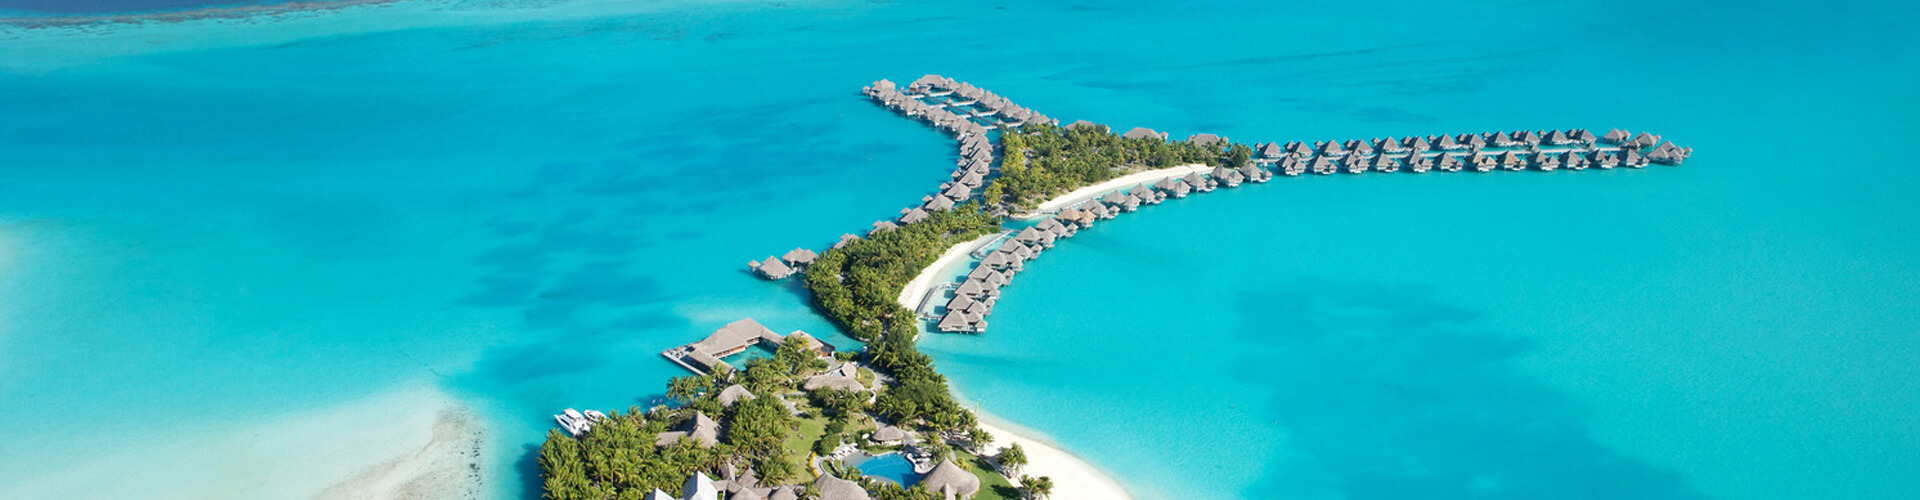 aeral overview of the hotel saint regis bora bora